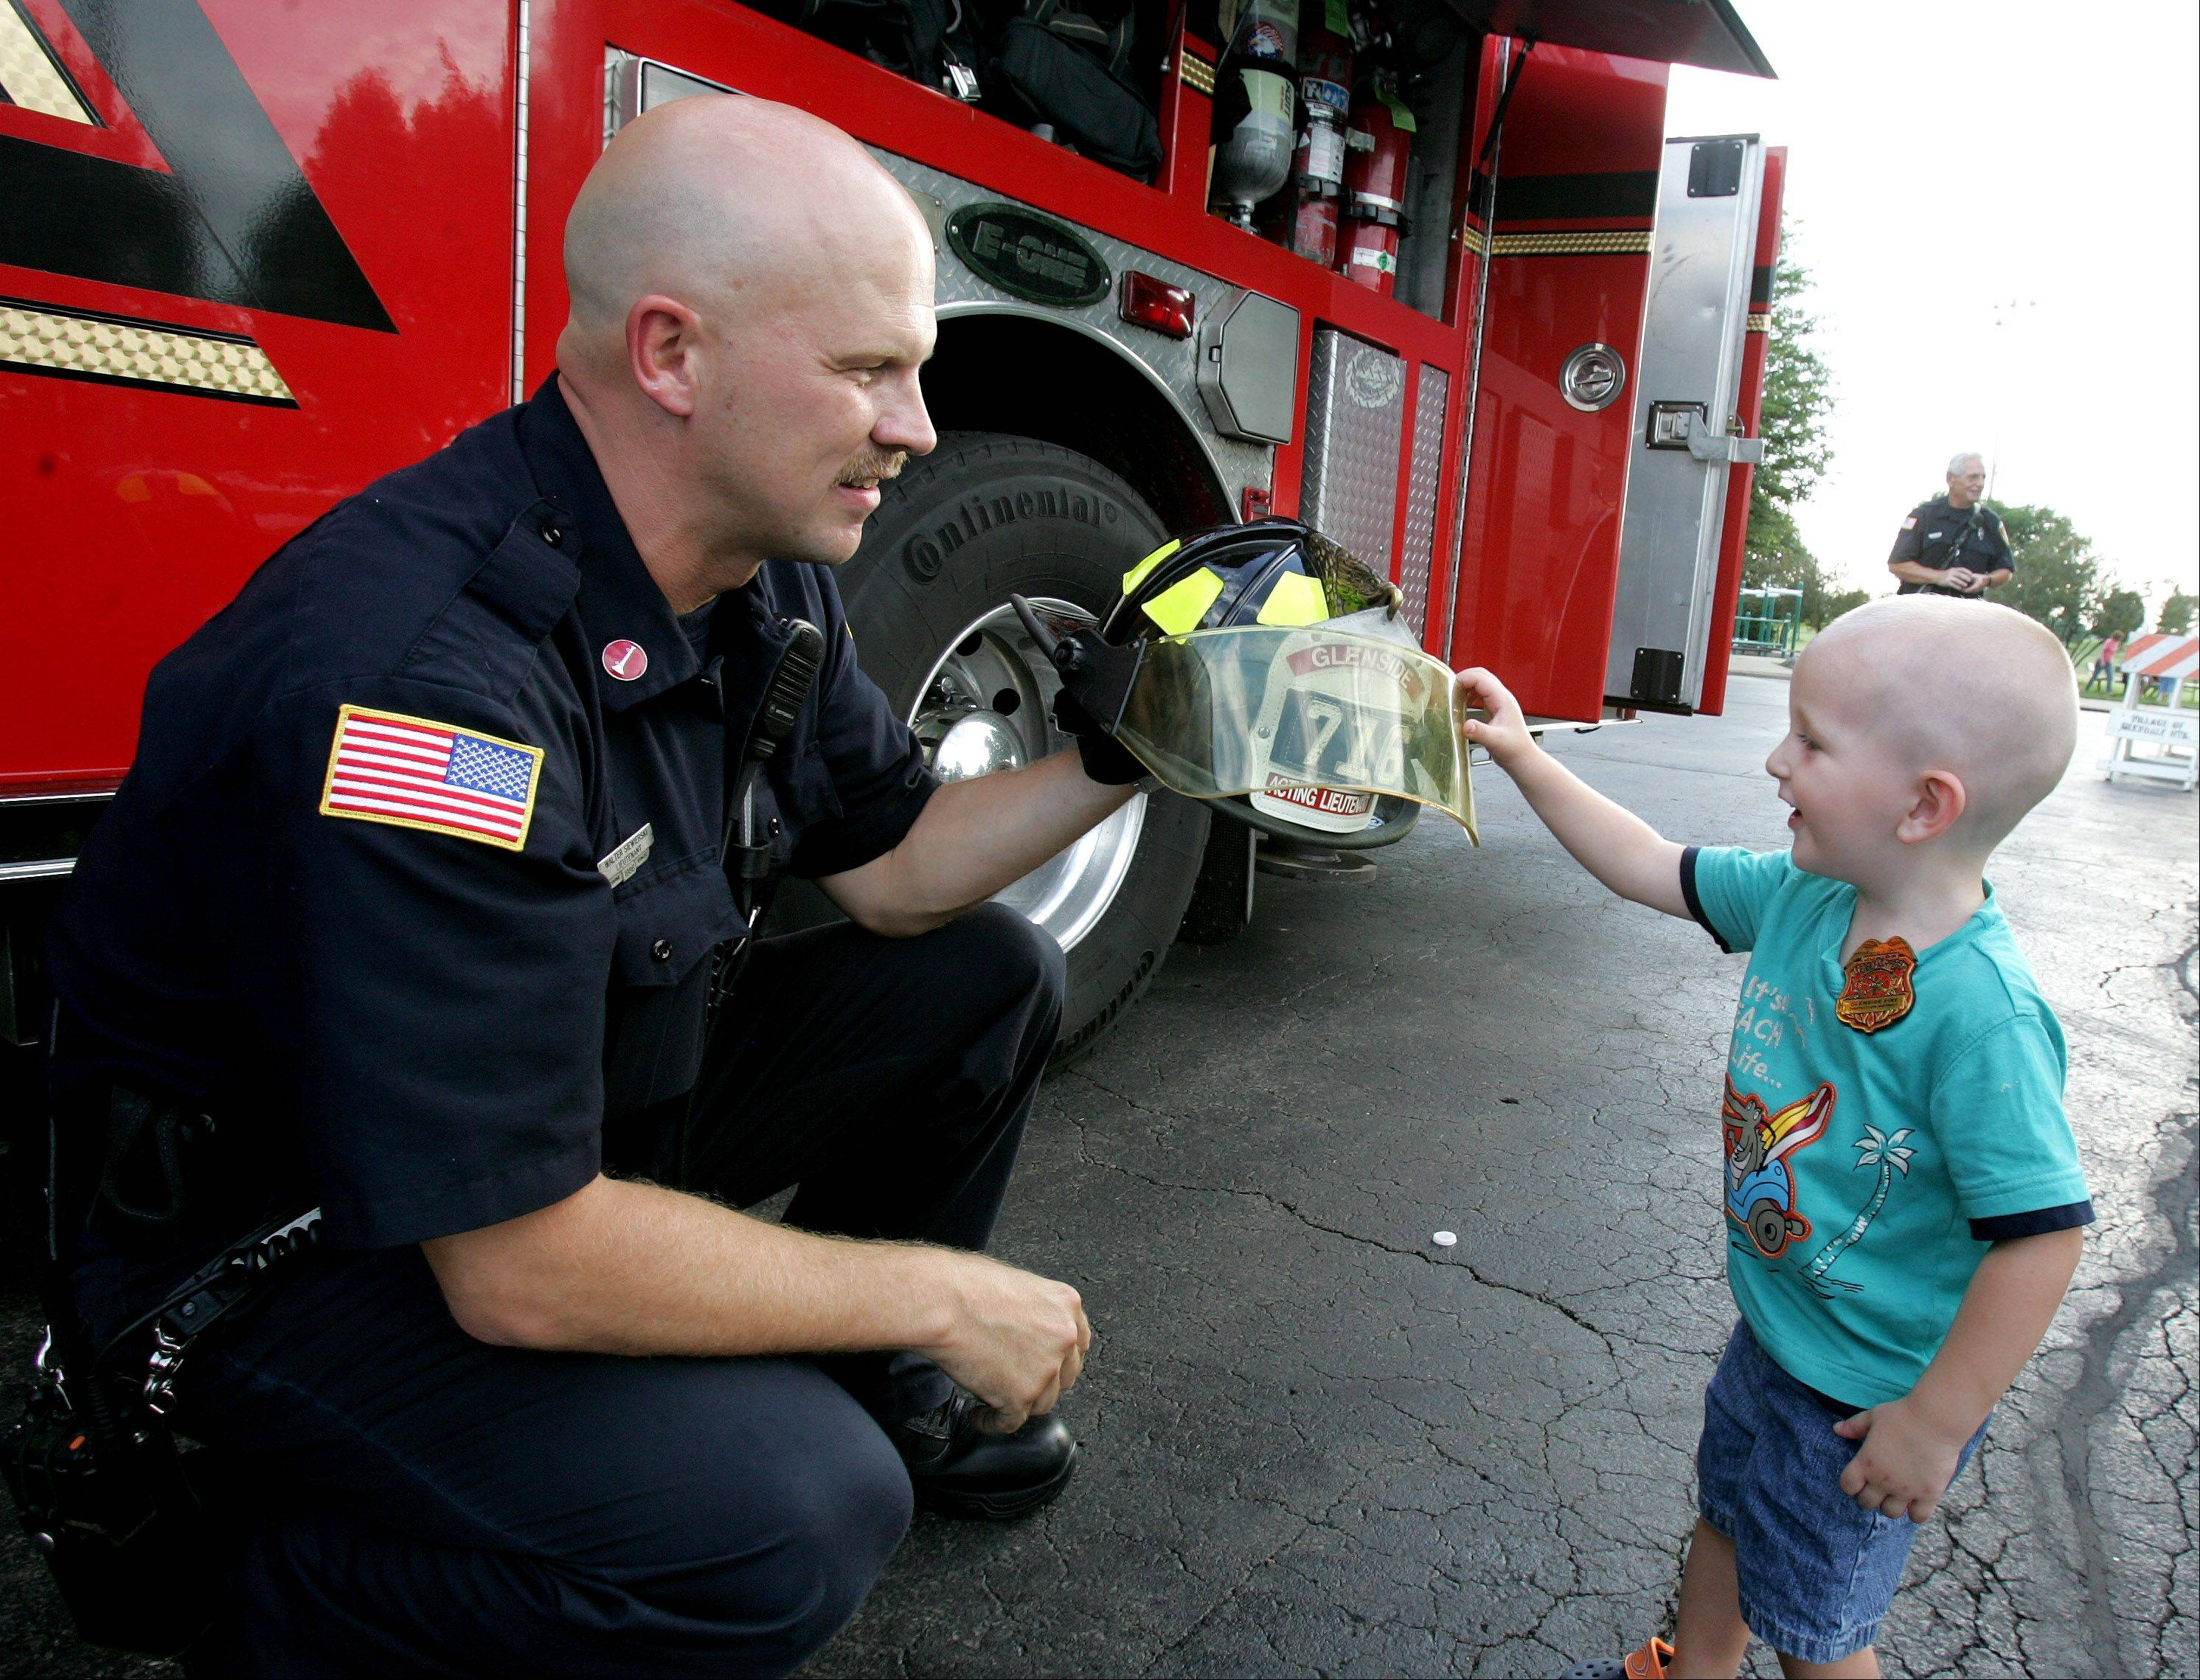 National Night Out unites police, communities